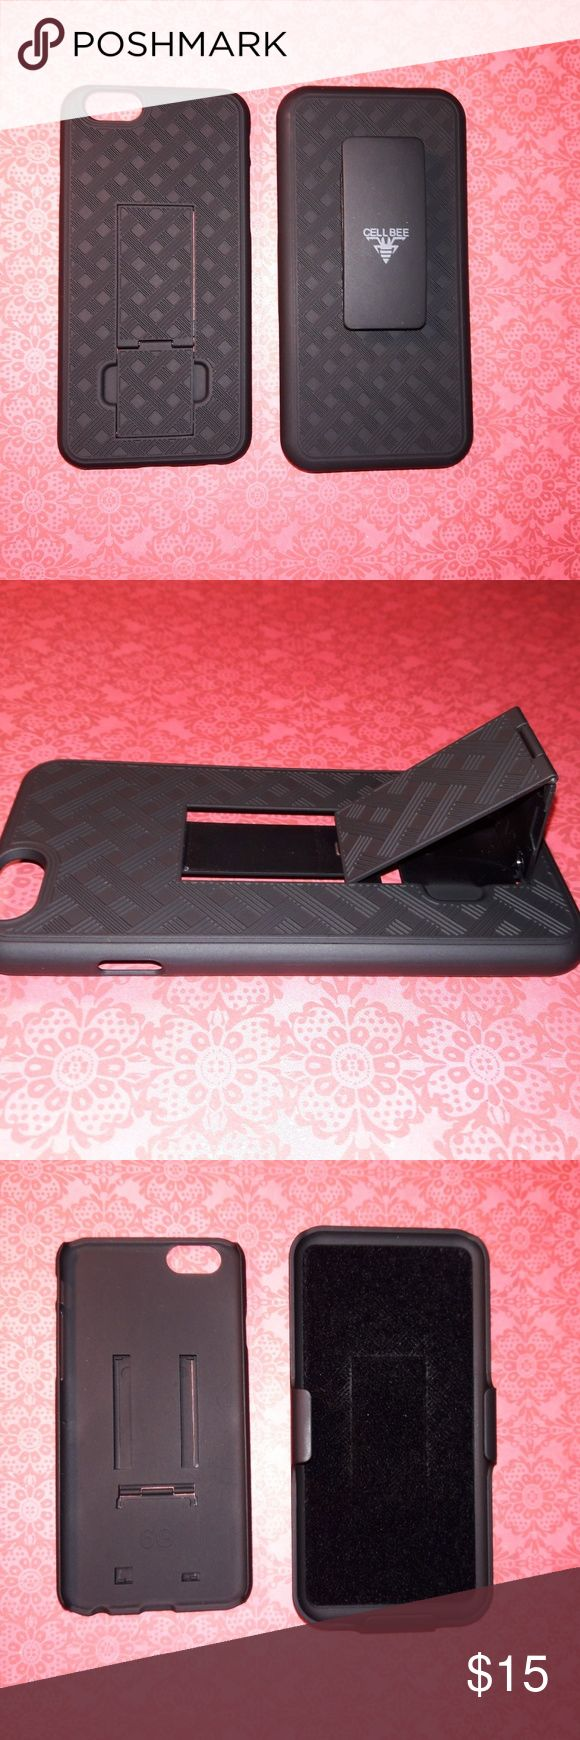 Iphone 6/6S Black Rugged Holster Kickstand Case For your consideration is one new Iphone 6/6S Black Rugged Holster Clip Kickstand Phone Case. Elevated edges allows for secure usage preventing your screen from being shattered if dropped.*Rubberized textured finish conveniently provides outstanding grip.*The belt clip rotates 180 degrees to provide you with ultra-flexibility. Enjoy all your media along with Amazon Prime videos and Netflix videos with the ingenious built in kickstand.*Easy…